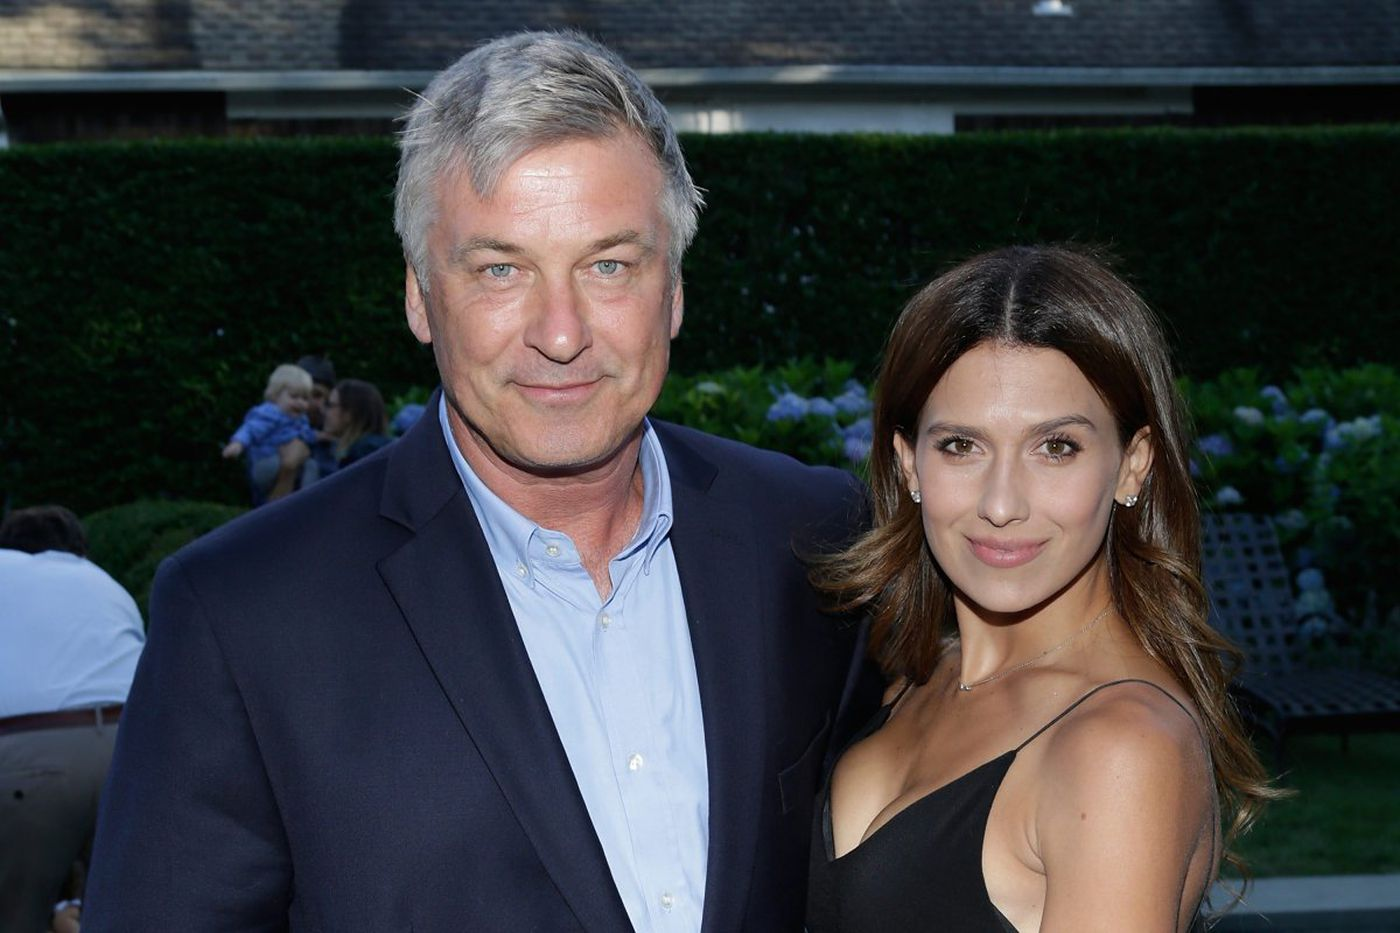 Alec Baldwin and wife Hilaria welcome fourth child https://t.co/tBTmS2jDqZ https://t.co/ub1sIlpCDP